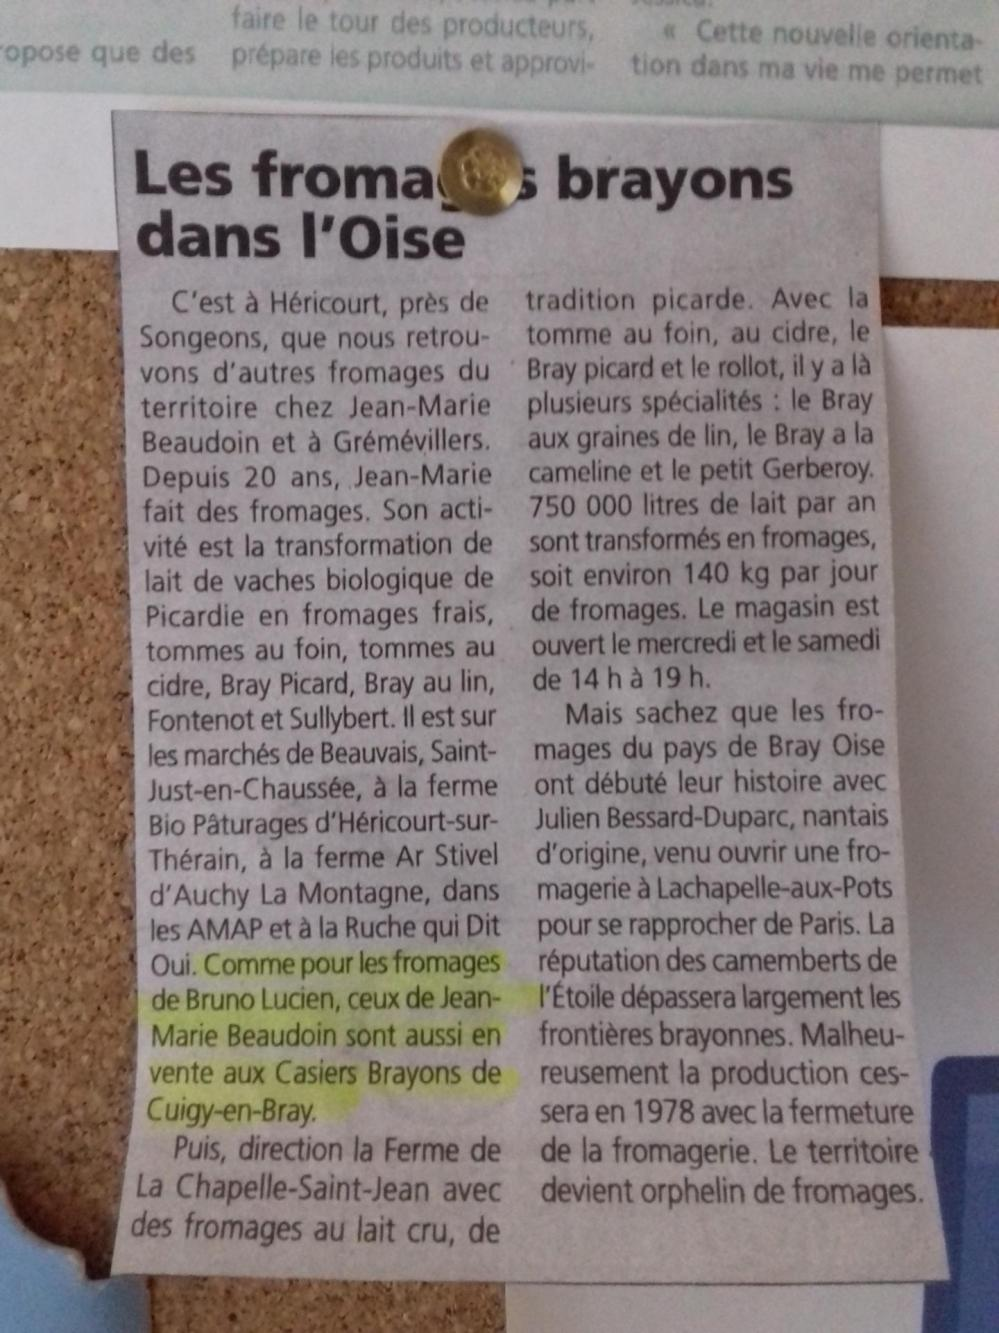 Fromages brayons dans l oise 1